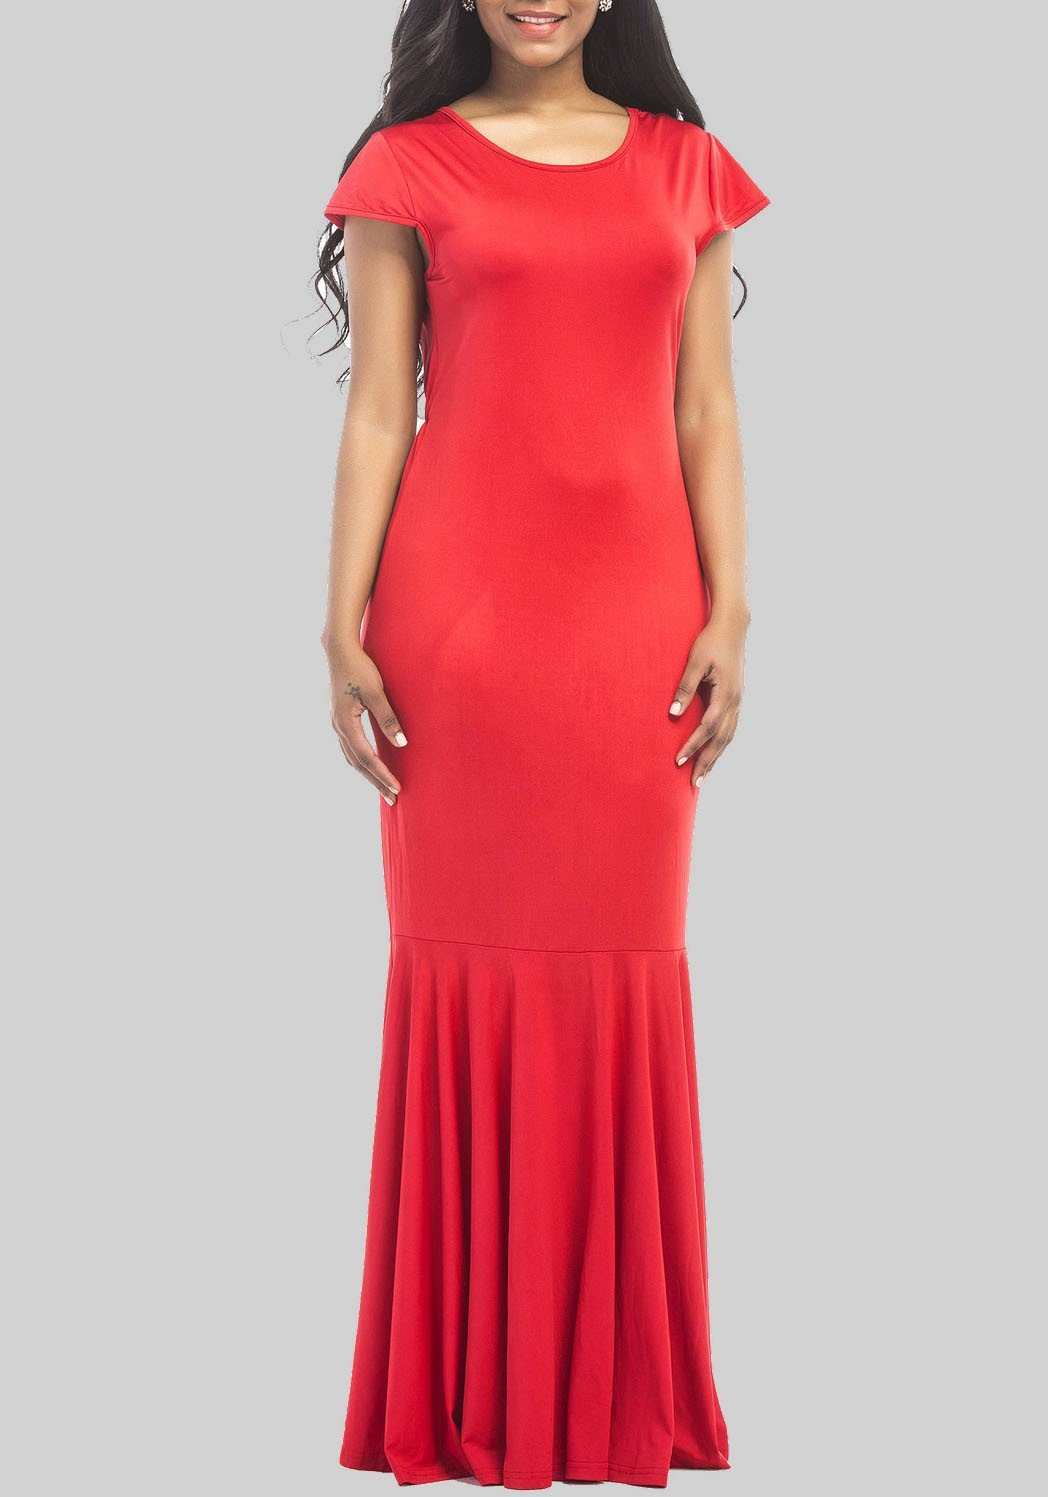 Red Draped Round Neck Short Sleeve Casual Maxi Dress